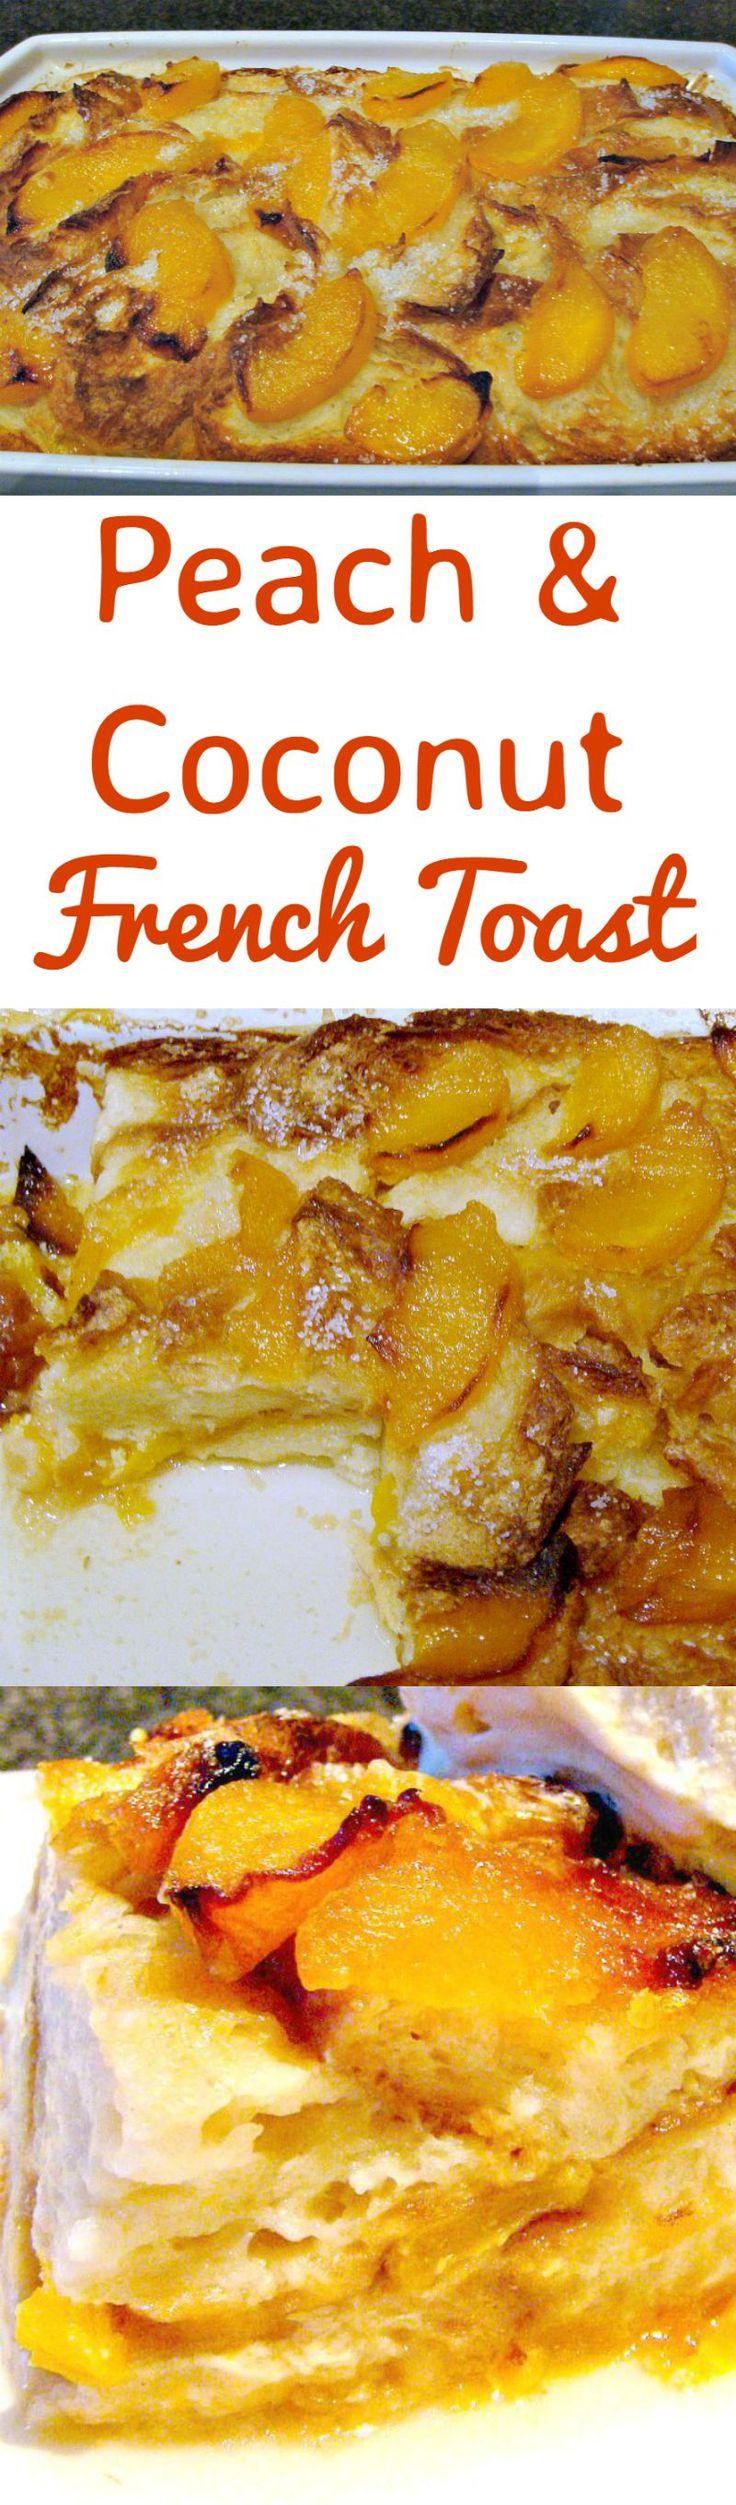 Peaches and Coconut French Toast. A great breakfast, brunch or dessert, serve warm or cold with ice cream, cream or simply on its own!